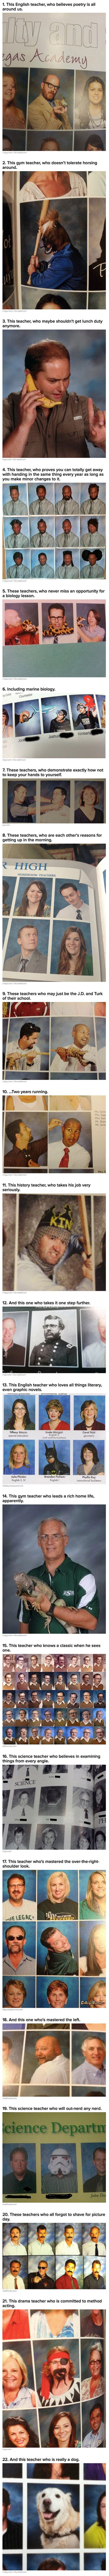 These teacher yearbook pics win! I wish my yearbook was this entertaining!